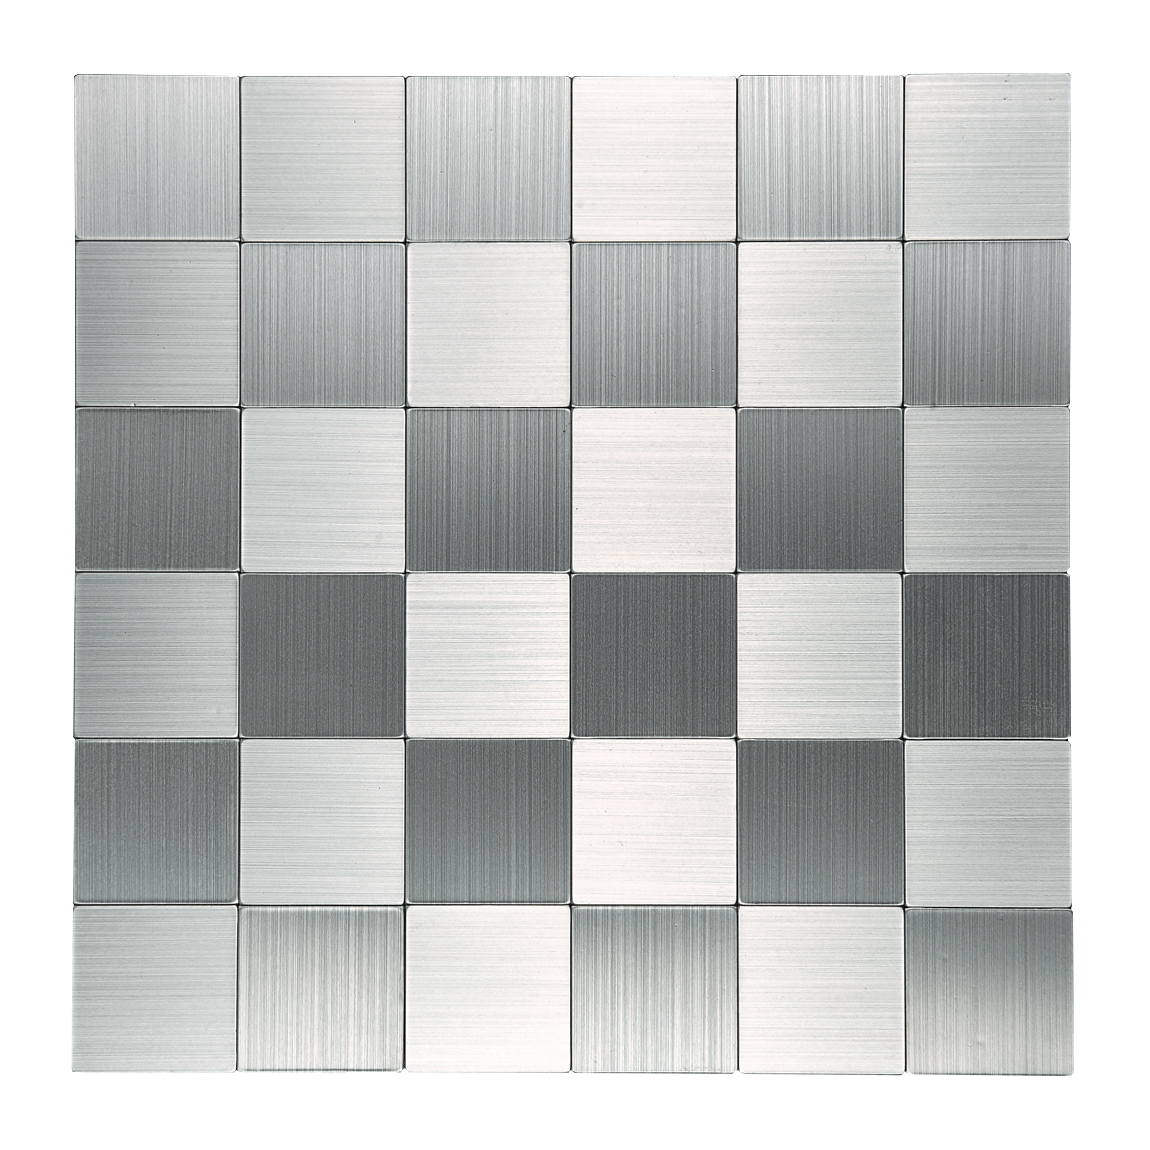 Art3d Peel and Stick Tile Metal Backsplash for Kitchen, Silver Set of 10